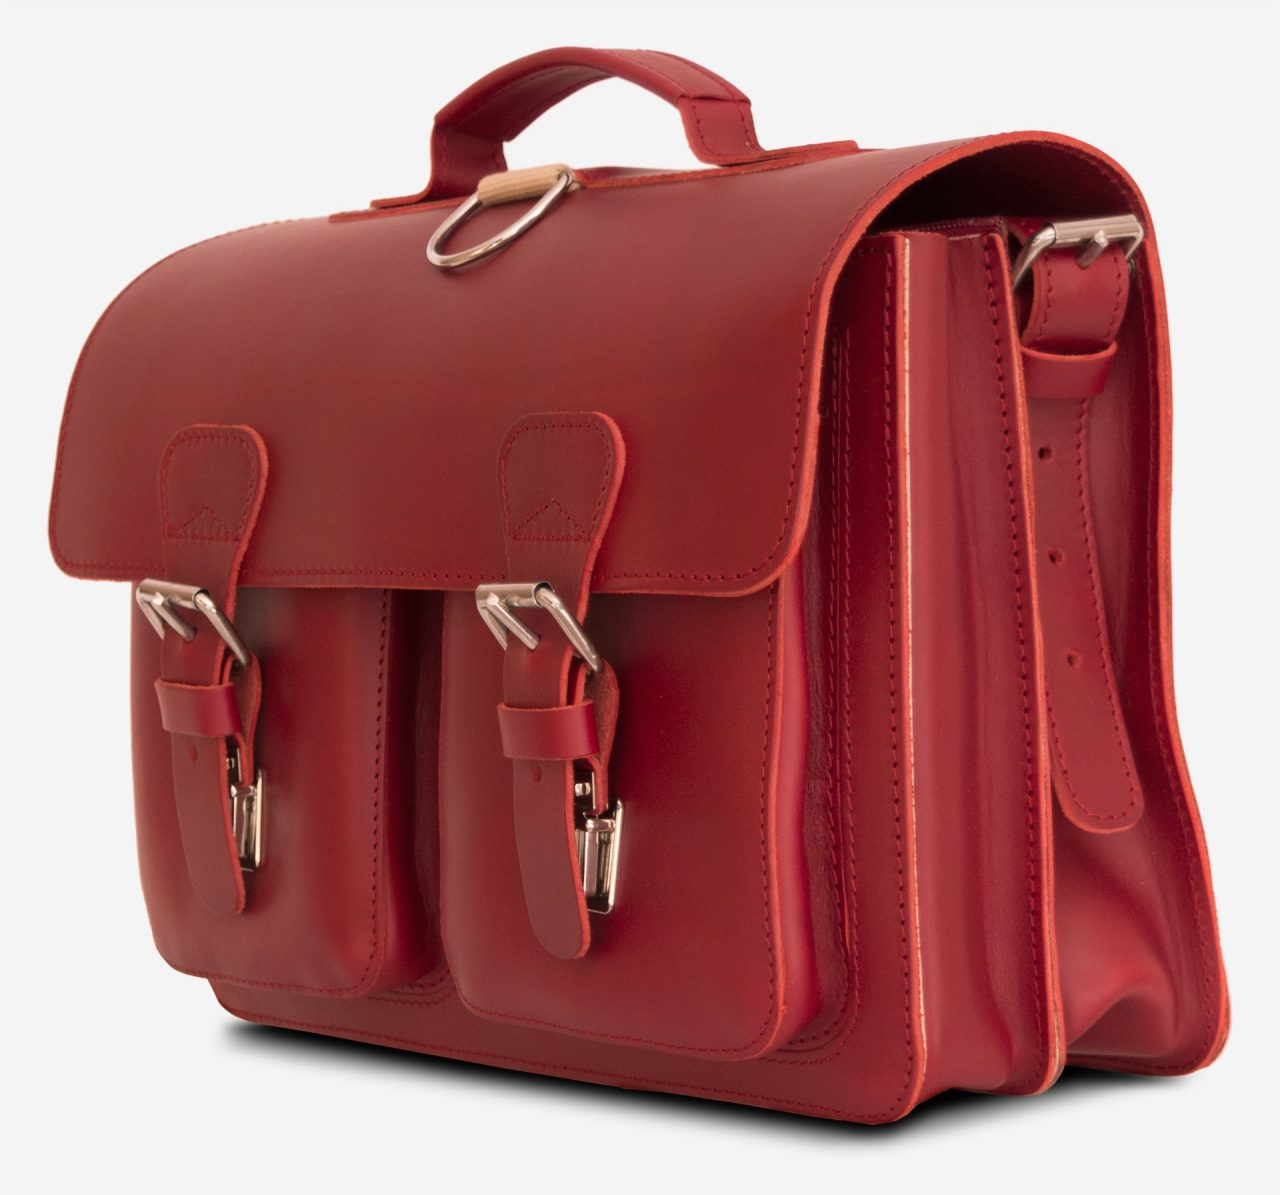 Side view of red leather satchel backpack with 2 gussets and symmetric front pockets for women - 152233.